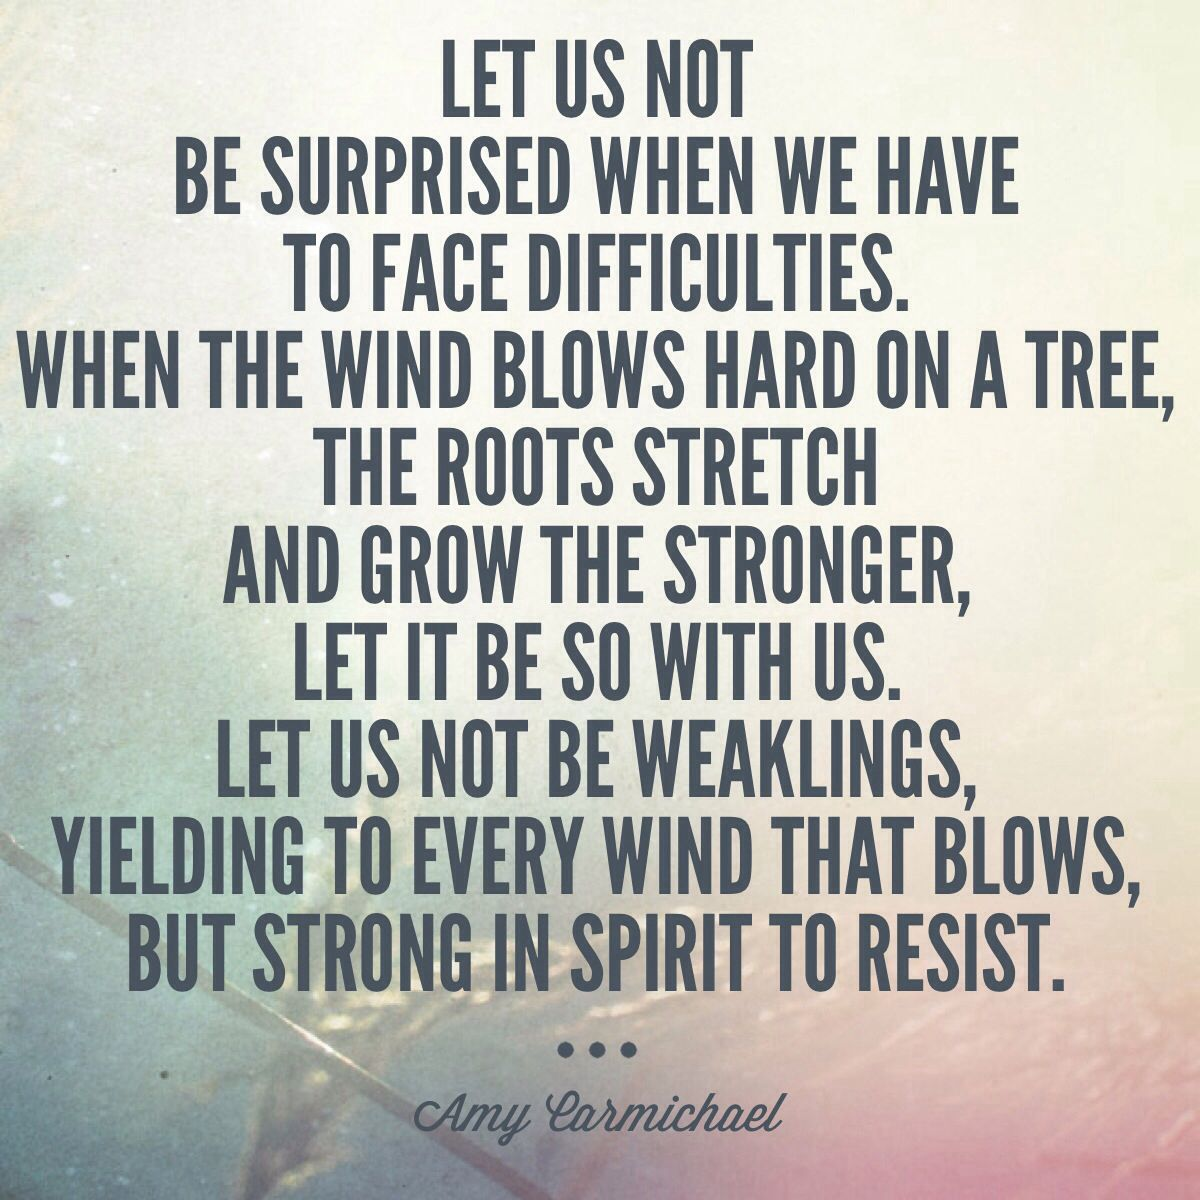 Resilience Quotes Funny: Facing Difficulties With Resilience. #suffering #faith Amy